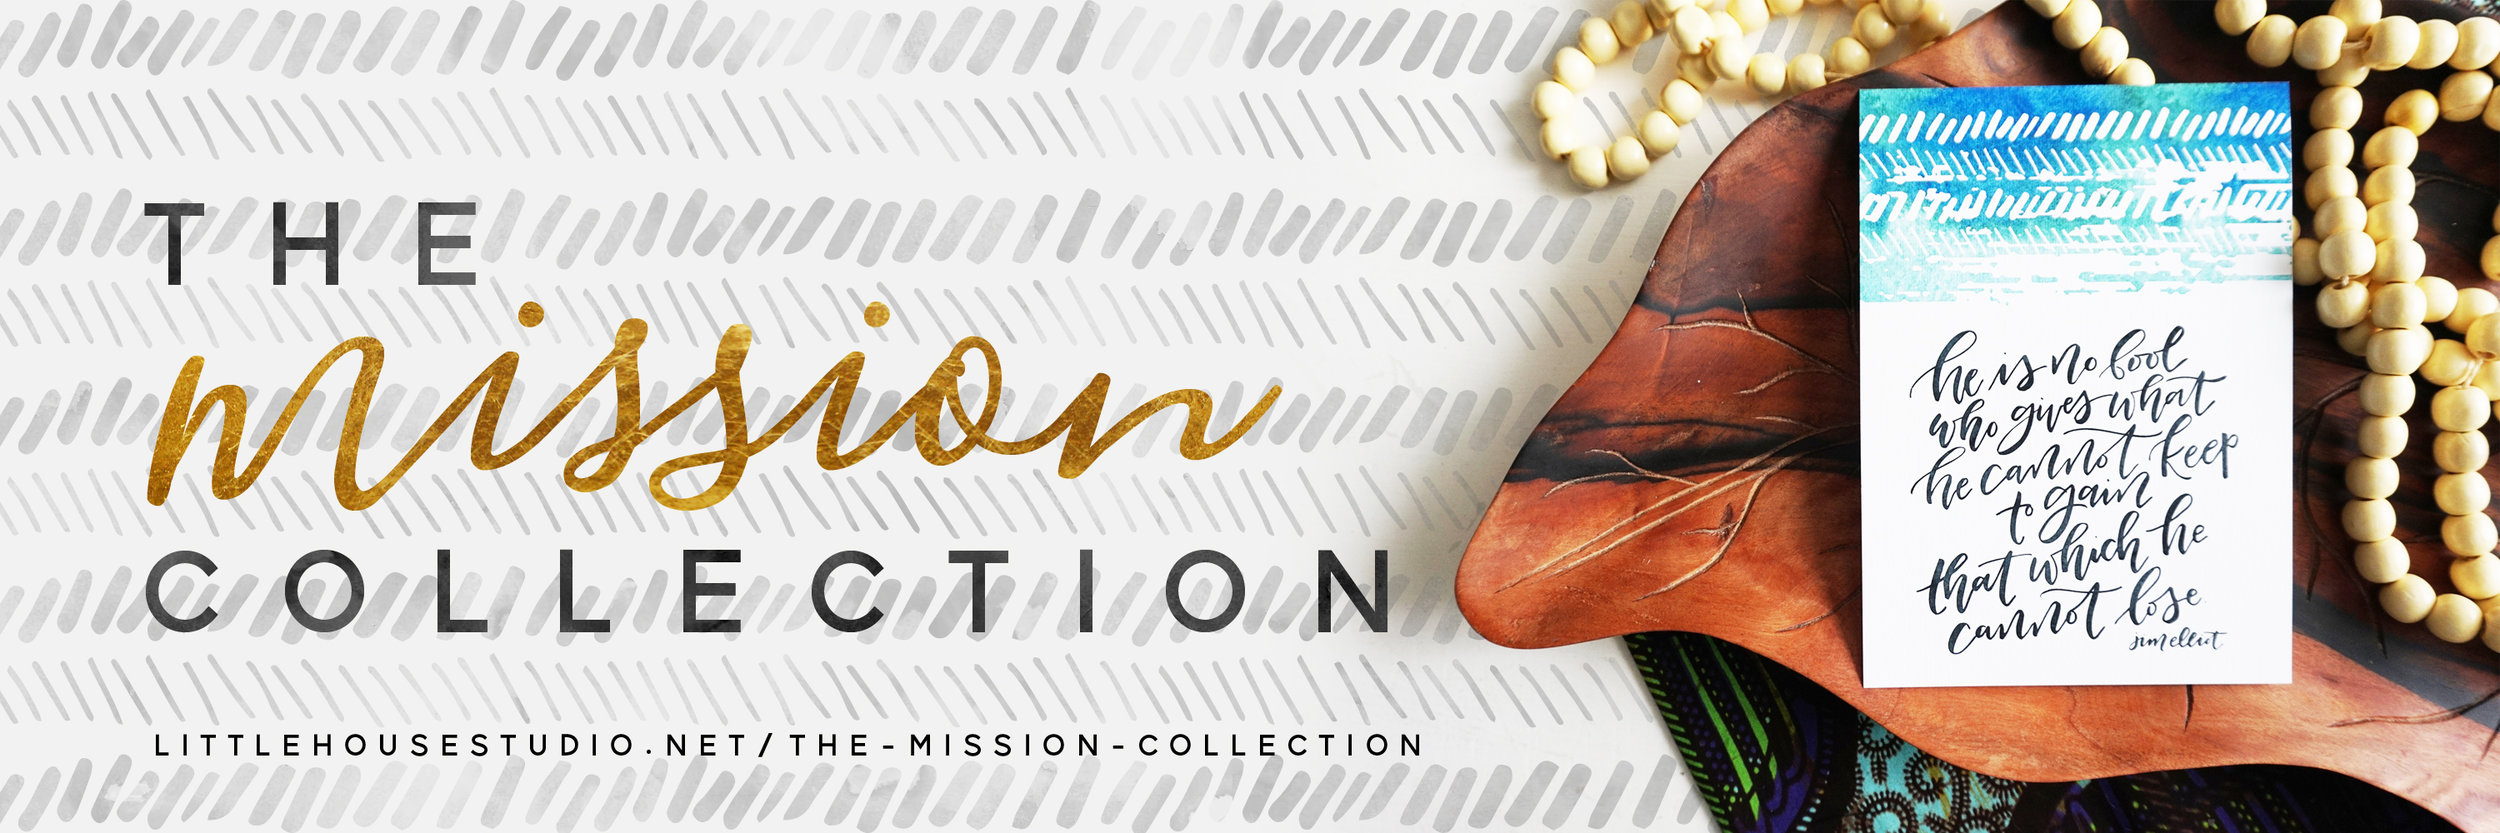 Little House Studio | The Mission Collection